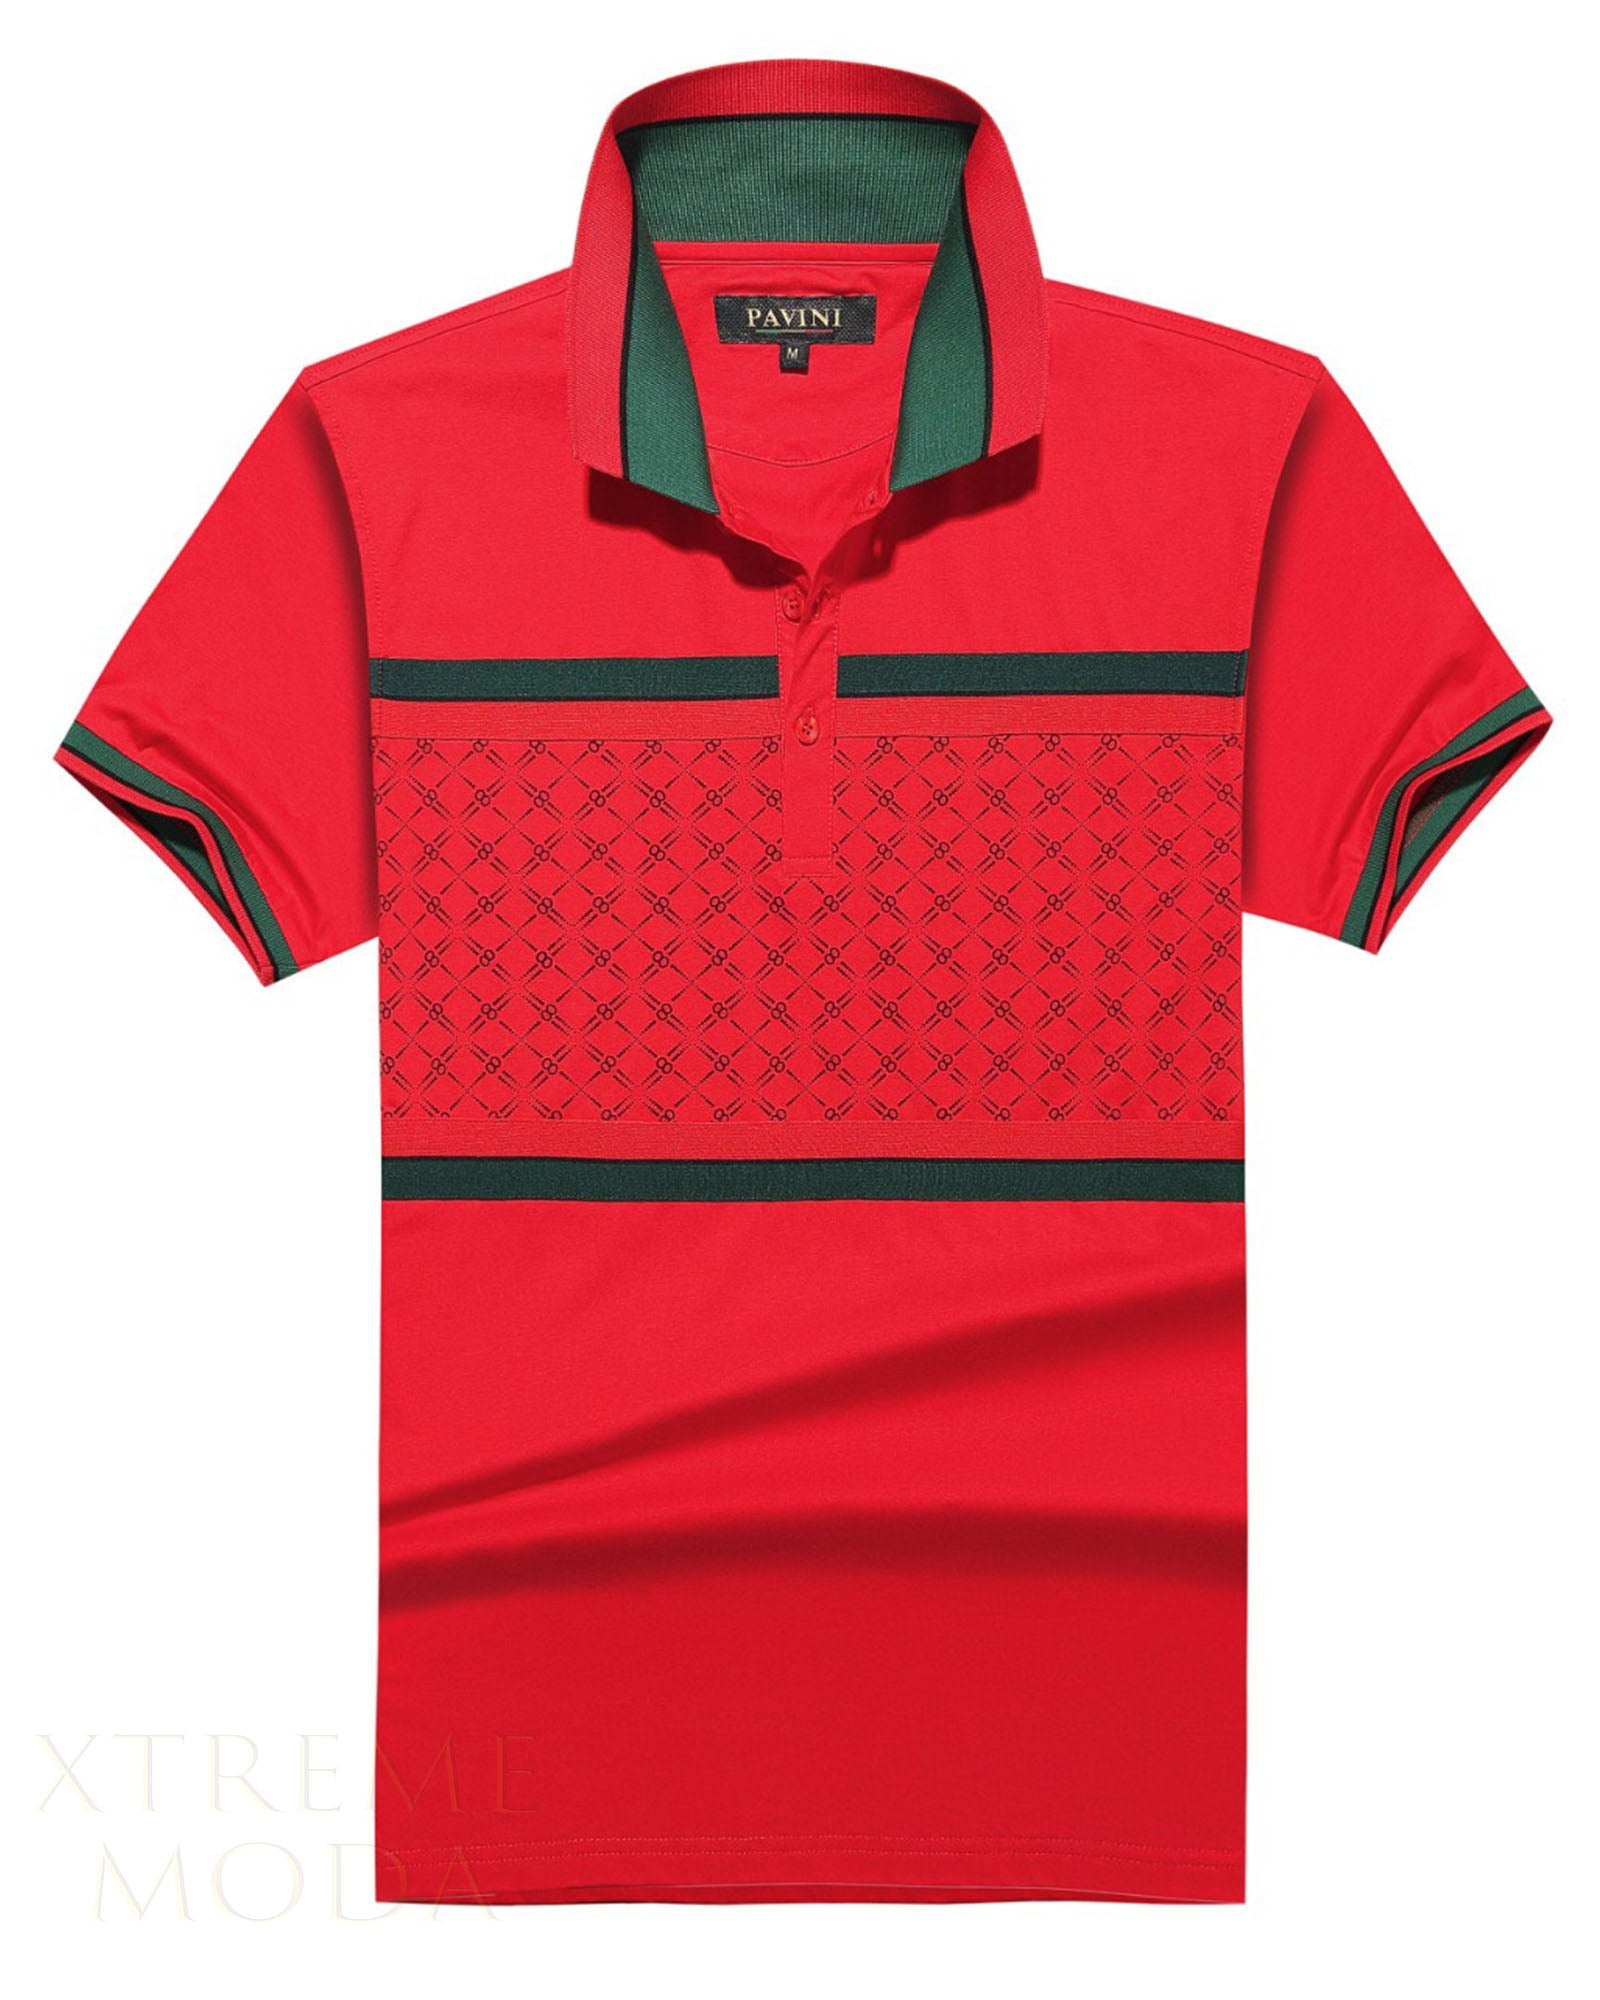 SLIM fit Pavini polo shirt  P-1928 Red